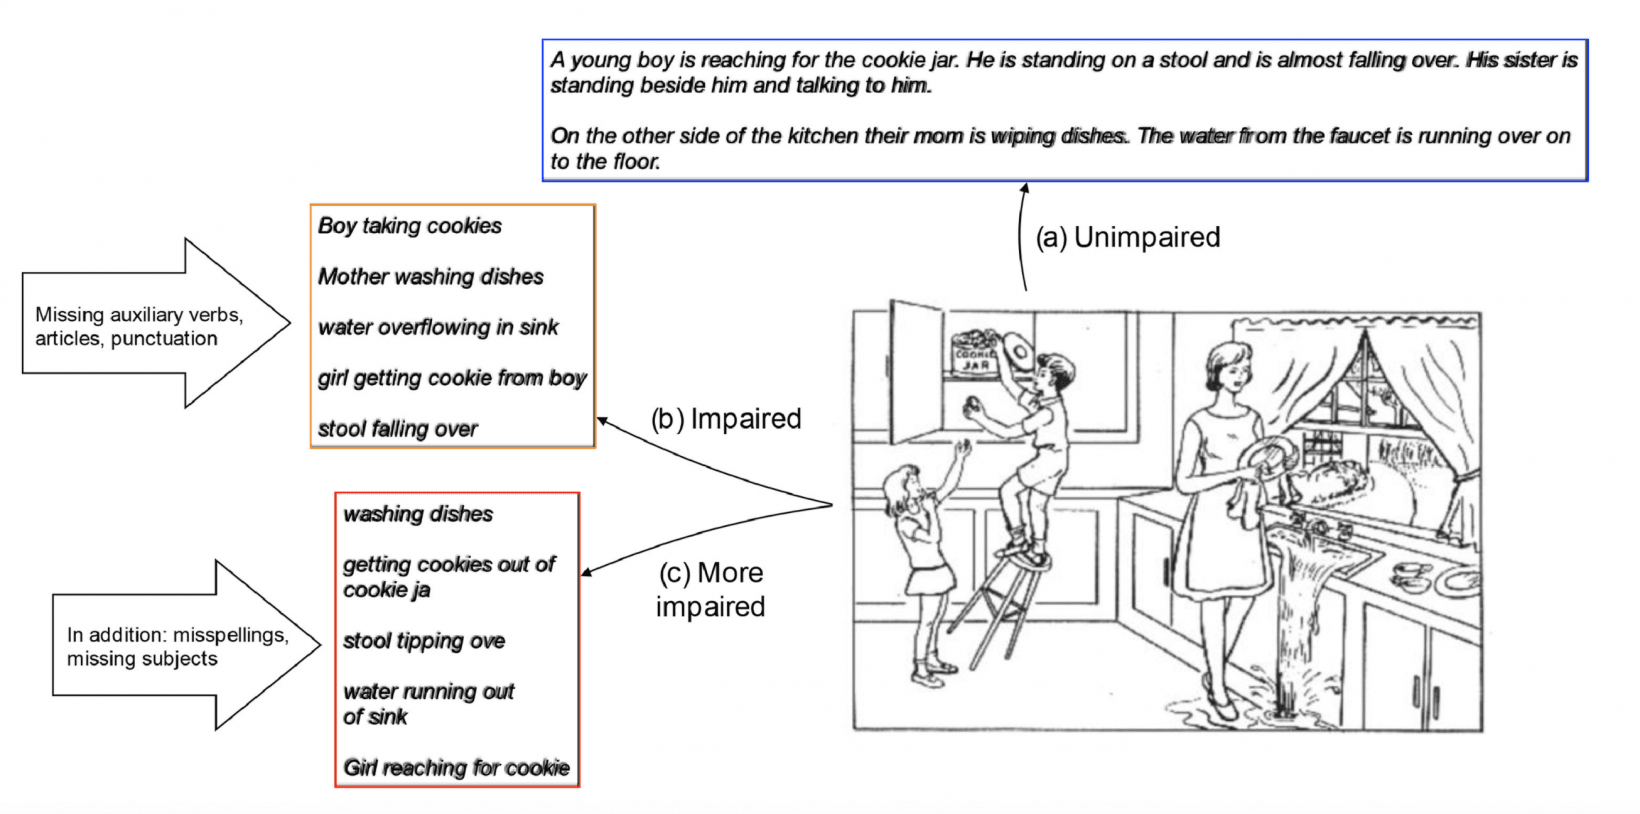 The cookie theft picture description task tests basic key vocabulary with distinct characters, time, and place contrasts.